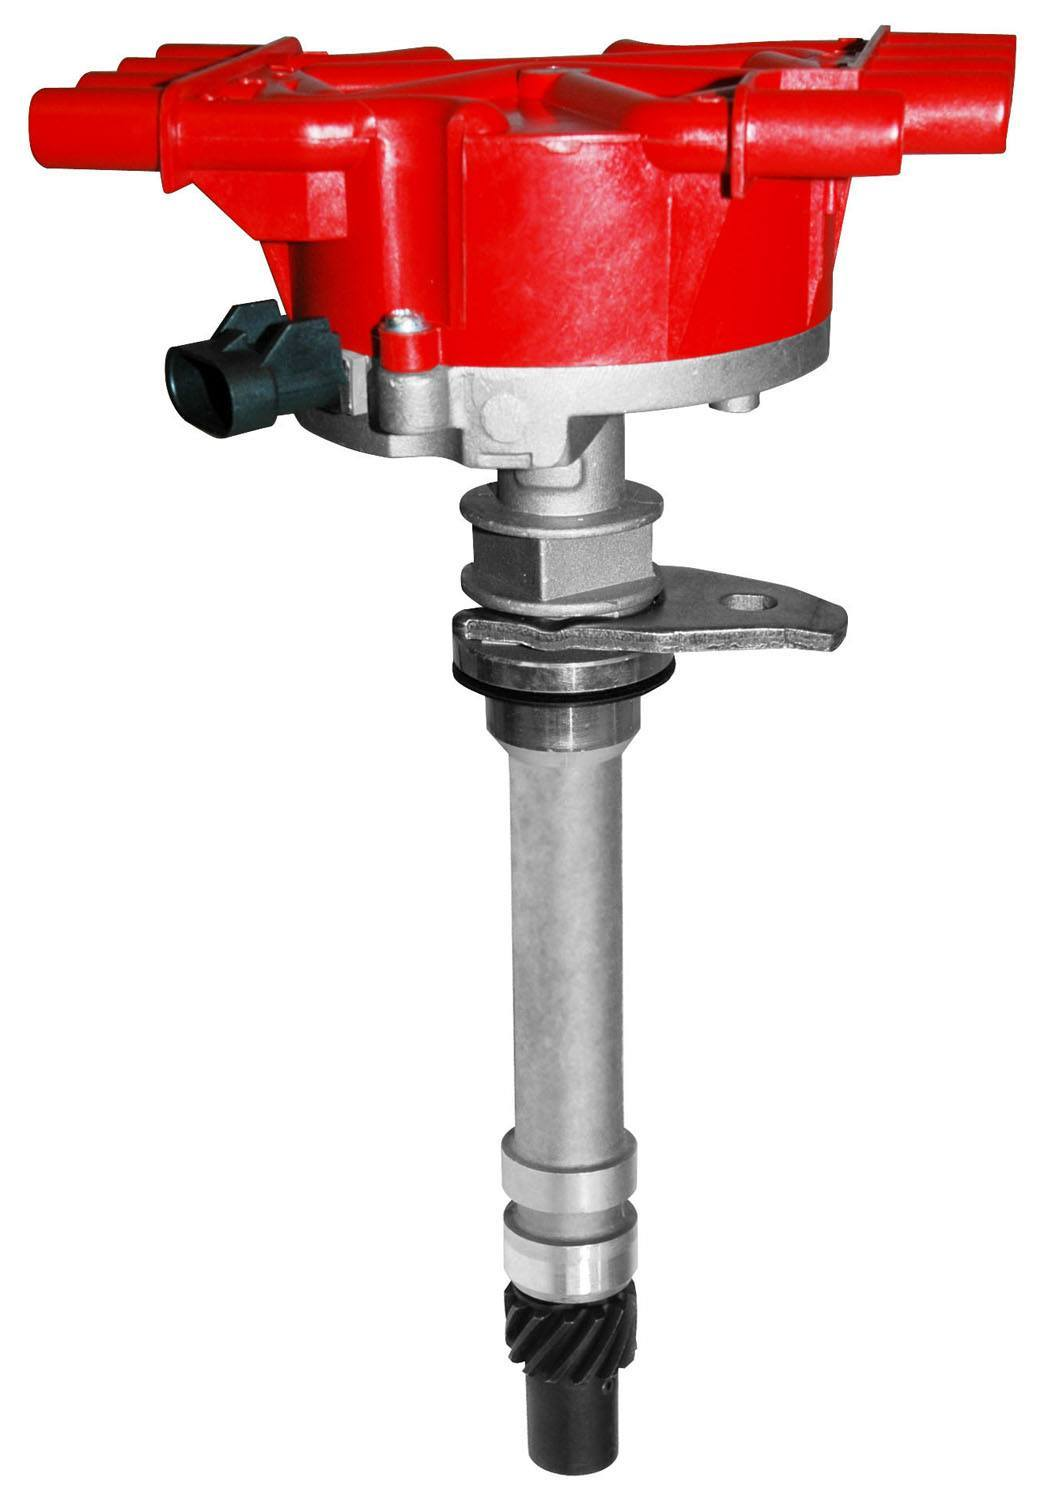 MSD Ignition 5592 Distributor, Street Fire GM EFI, Magnetic Pickup, Electronic Advance, Socket Style, Red, Small Block Chevy, Each